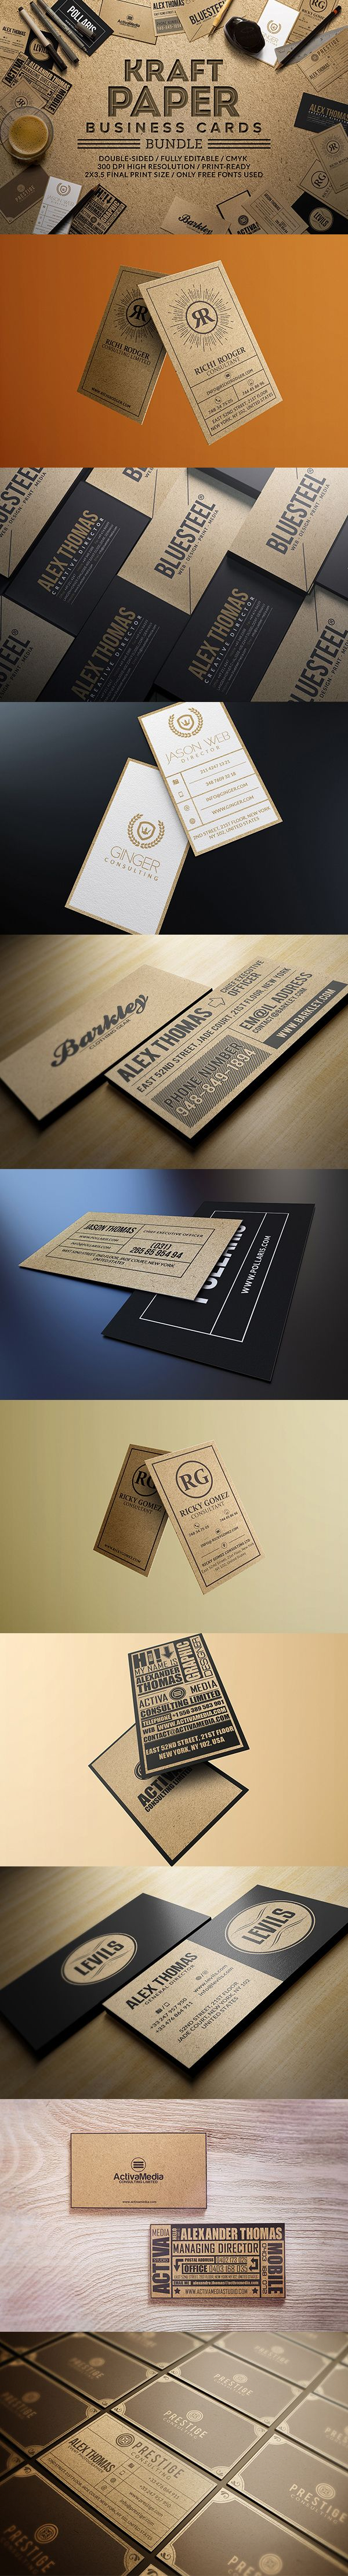 Top 24 ideas about Business Cards on Pinterest